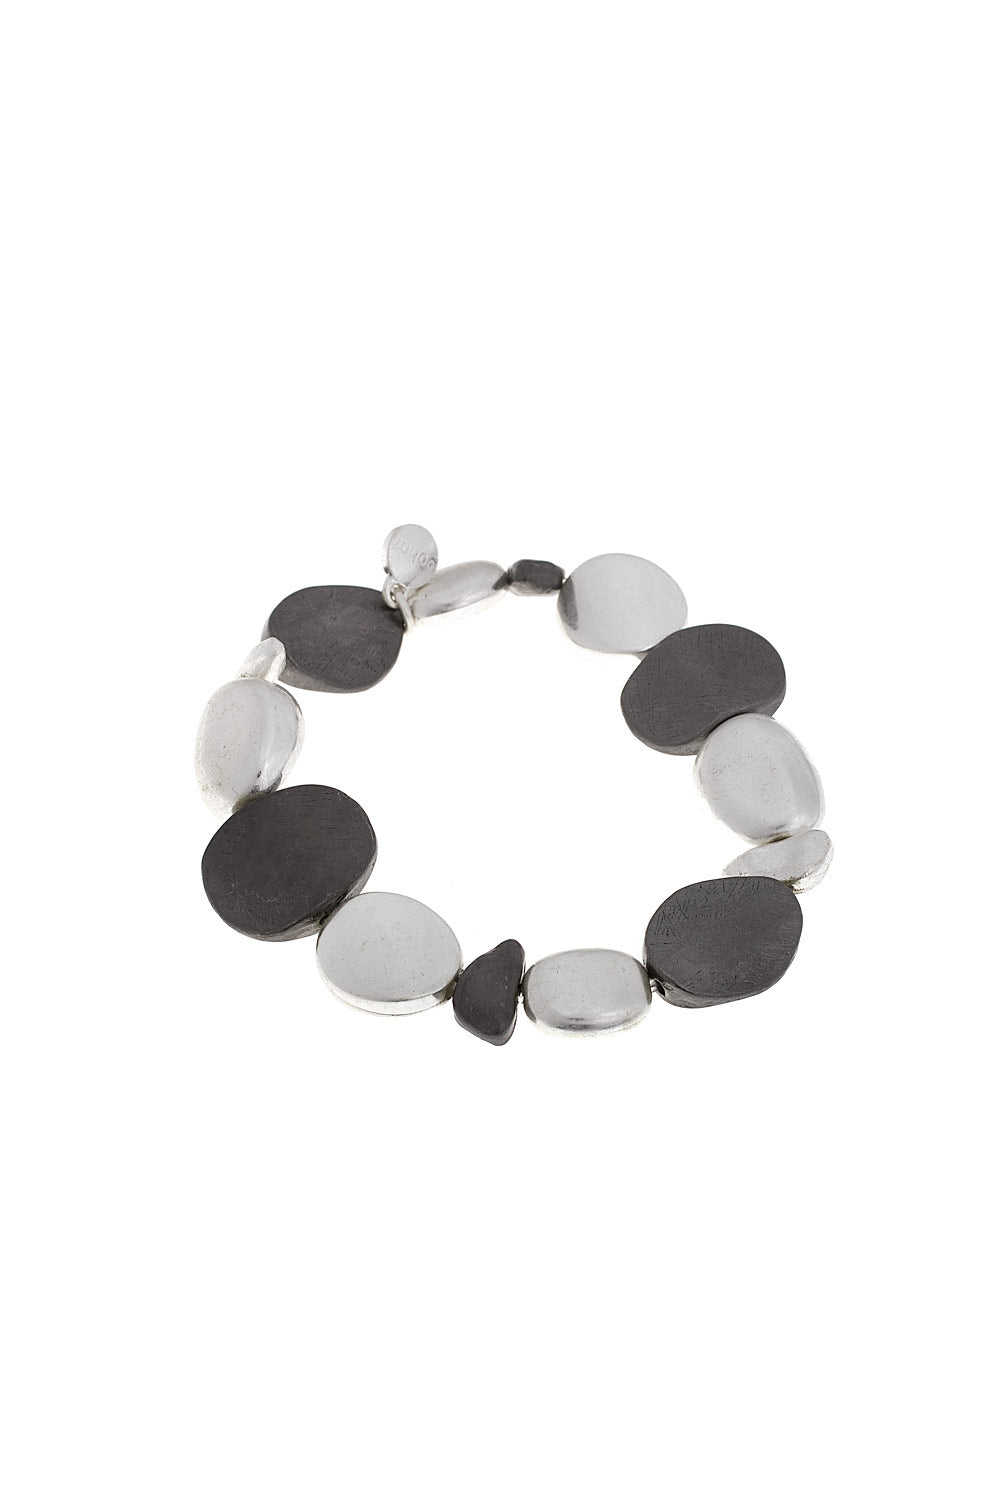 Type 2 Peaceful Pebbles Bracelet